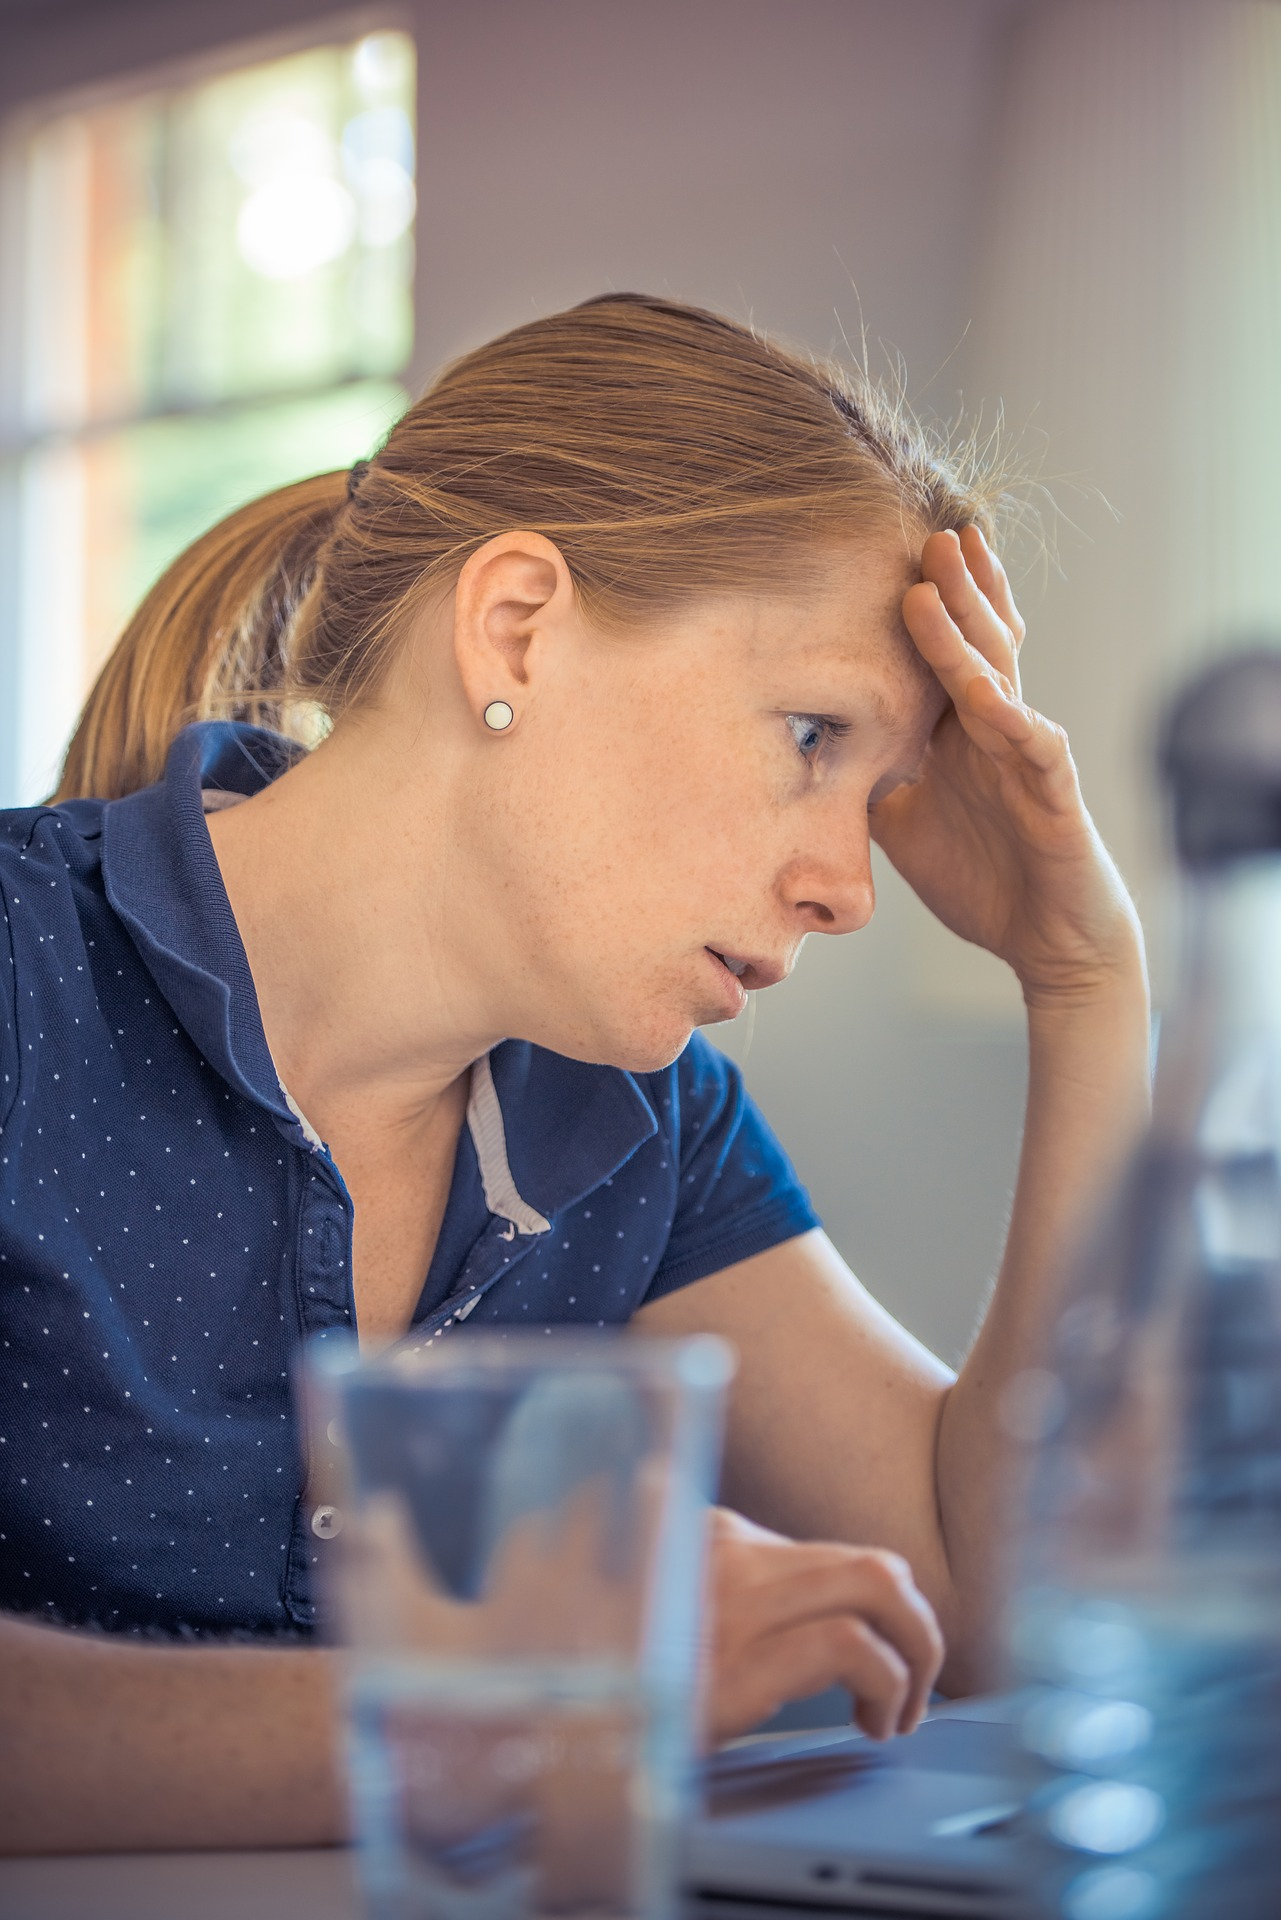 How Stress Can Impact Your Life